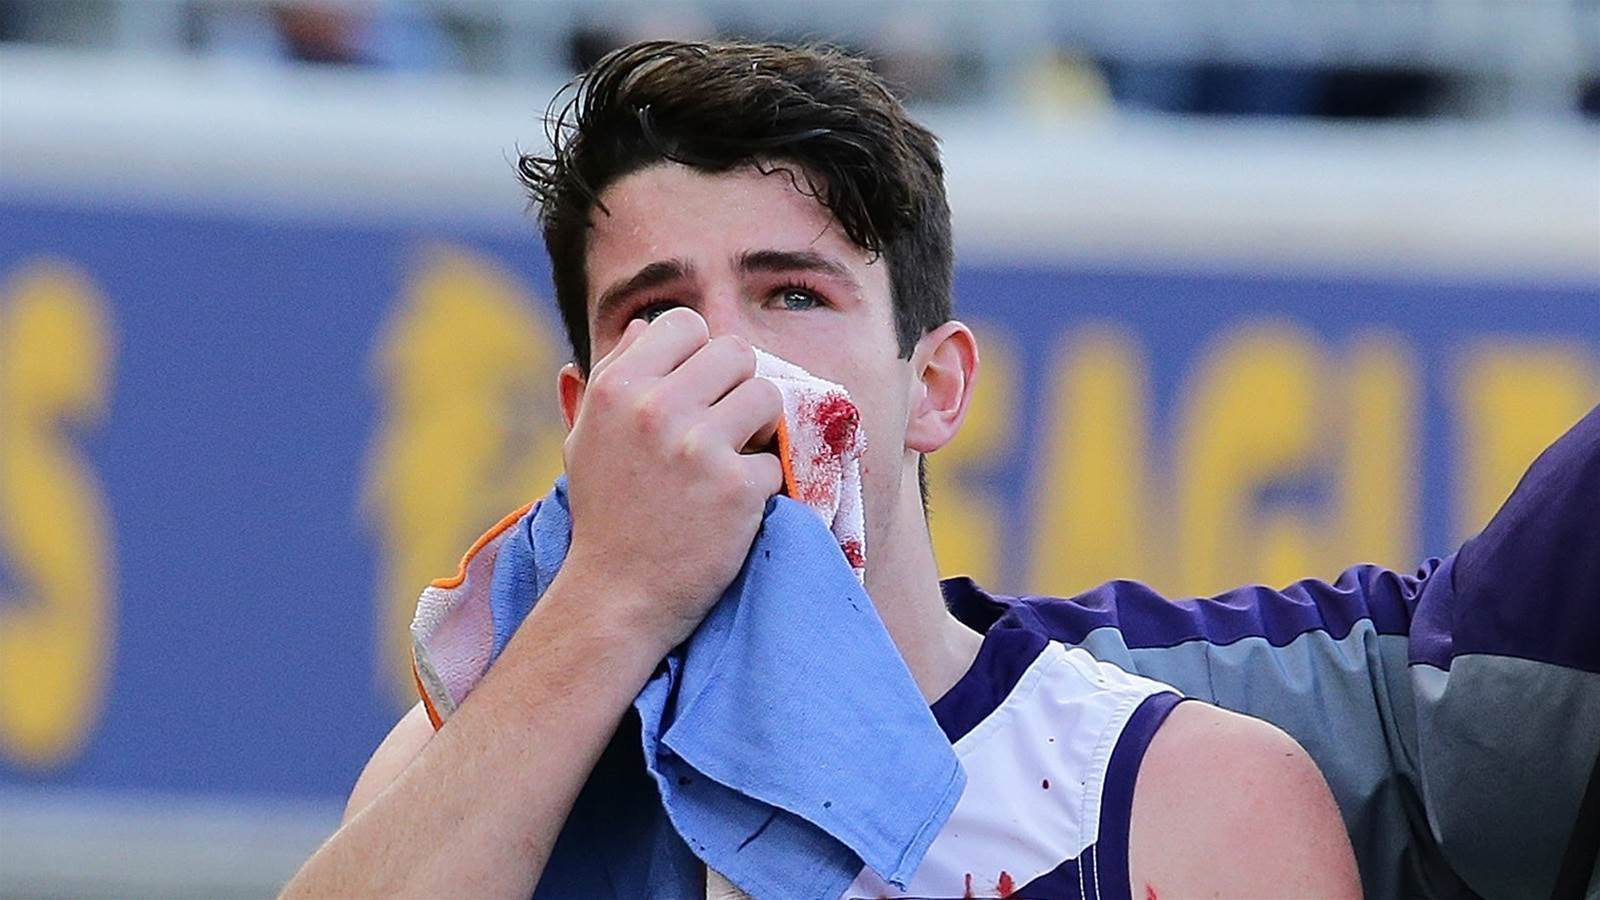 Perth police sidestep Andrew Gaff assault charges